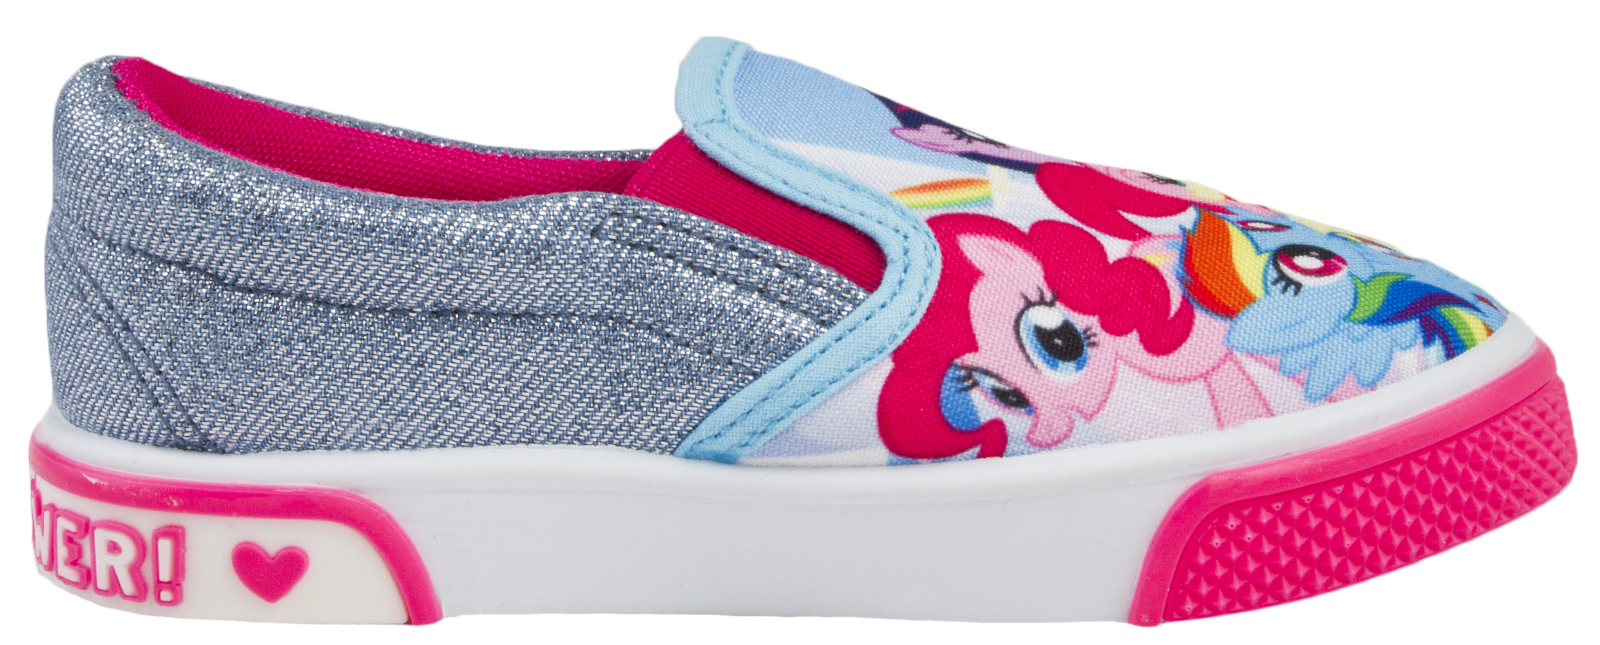 Girls My Little Pony Skate Shoes Slip On Canvas Pumps Flat Trainers Kids Size